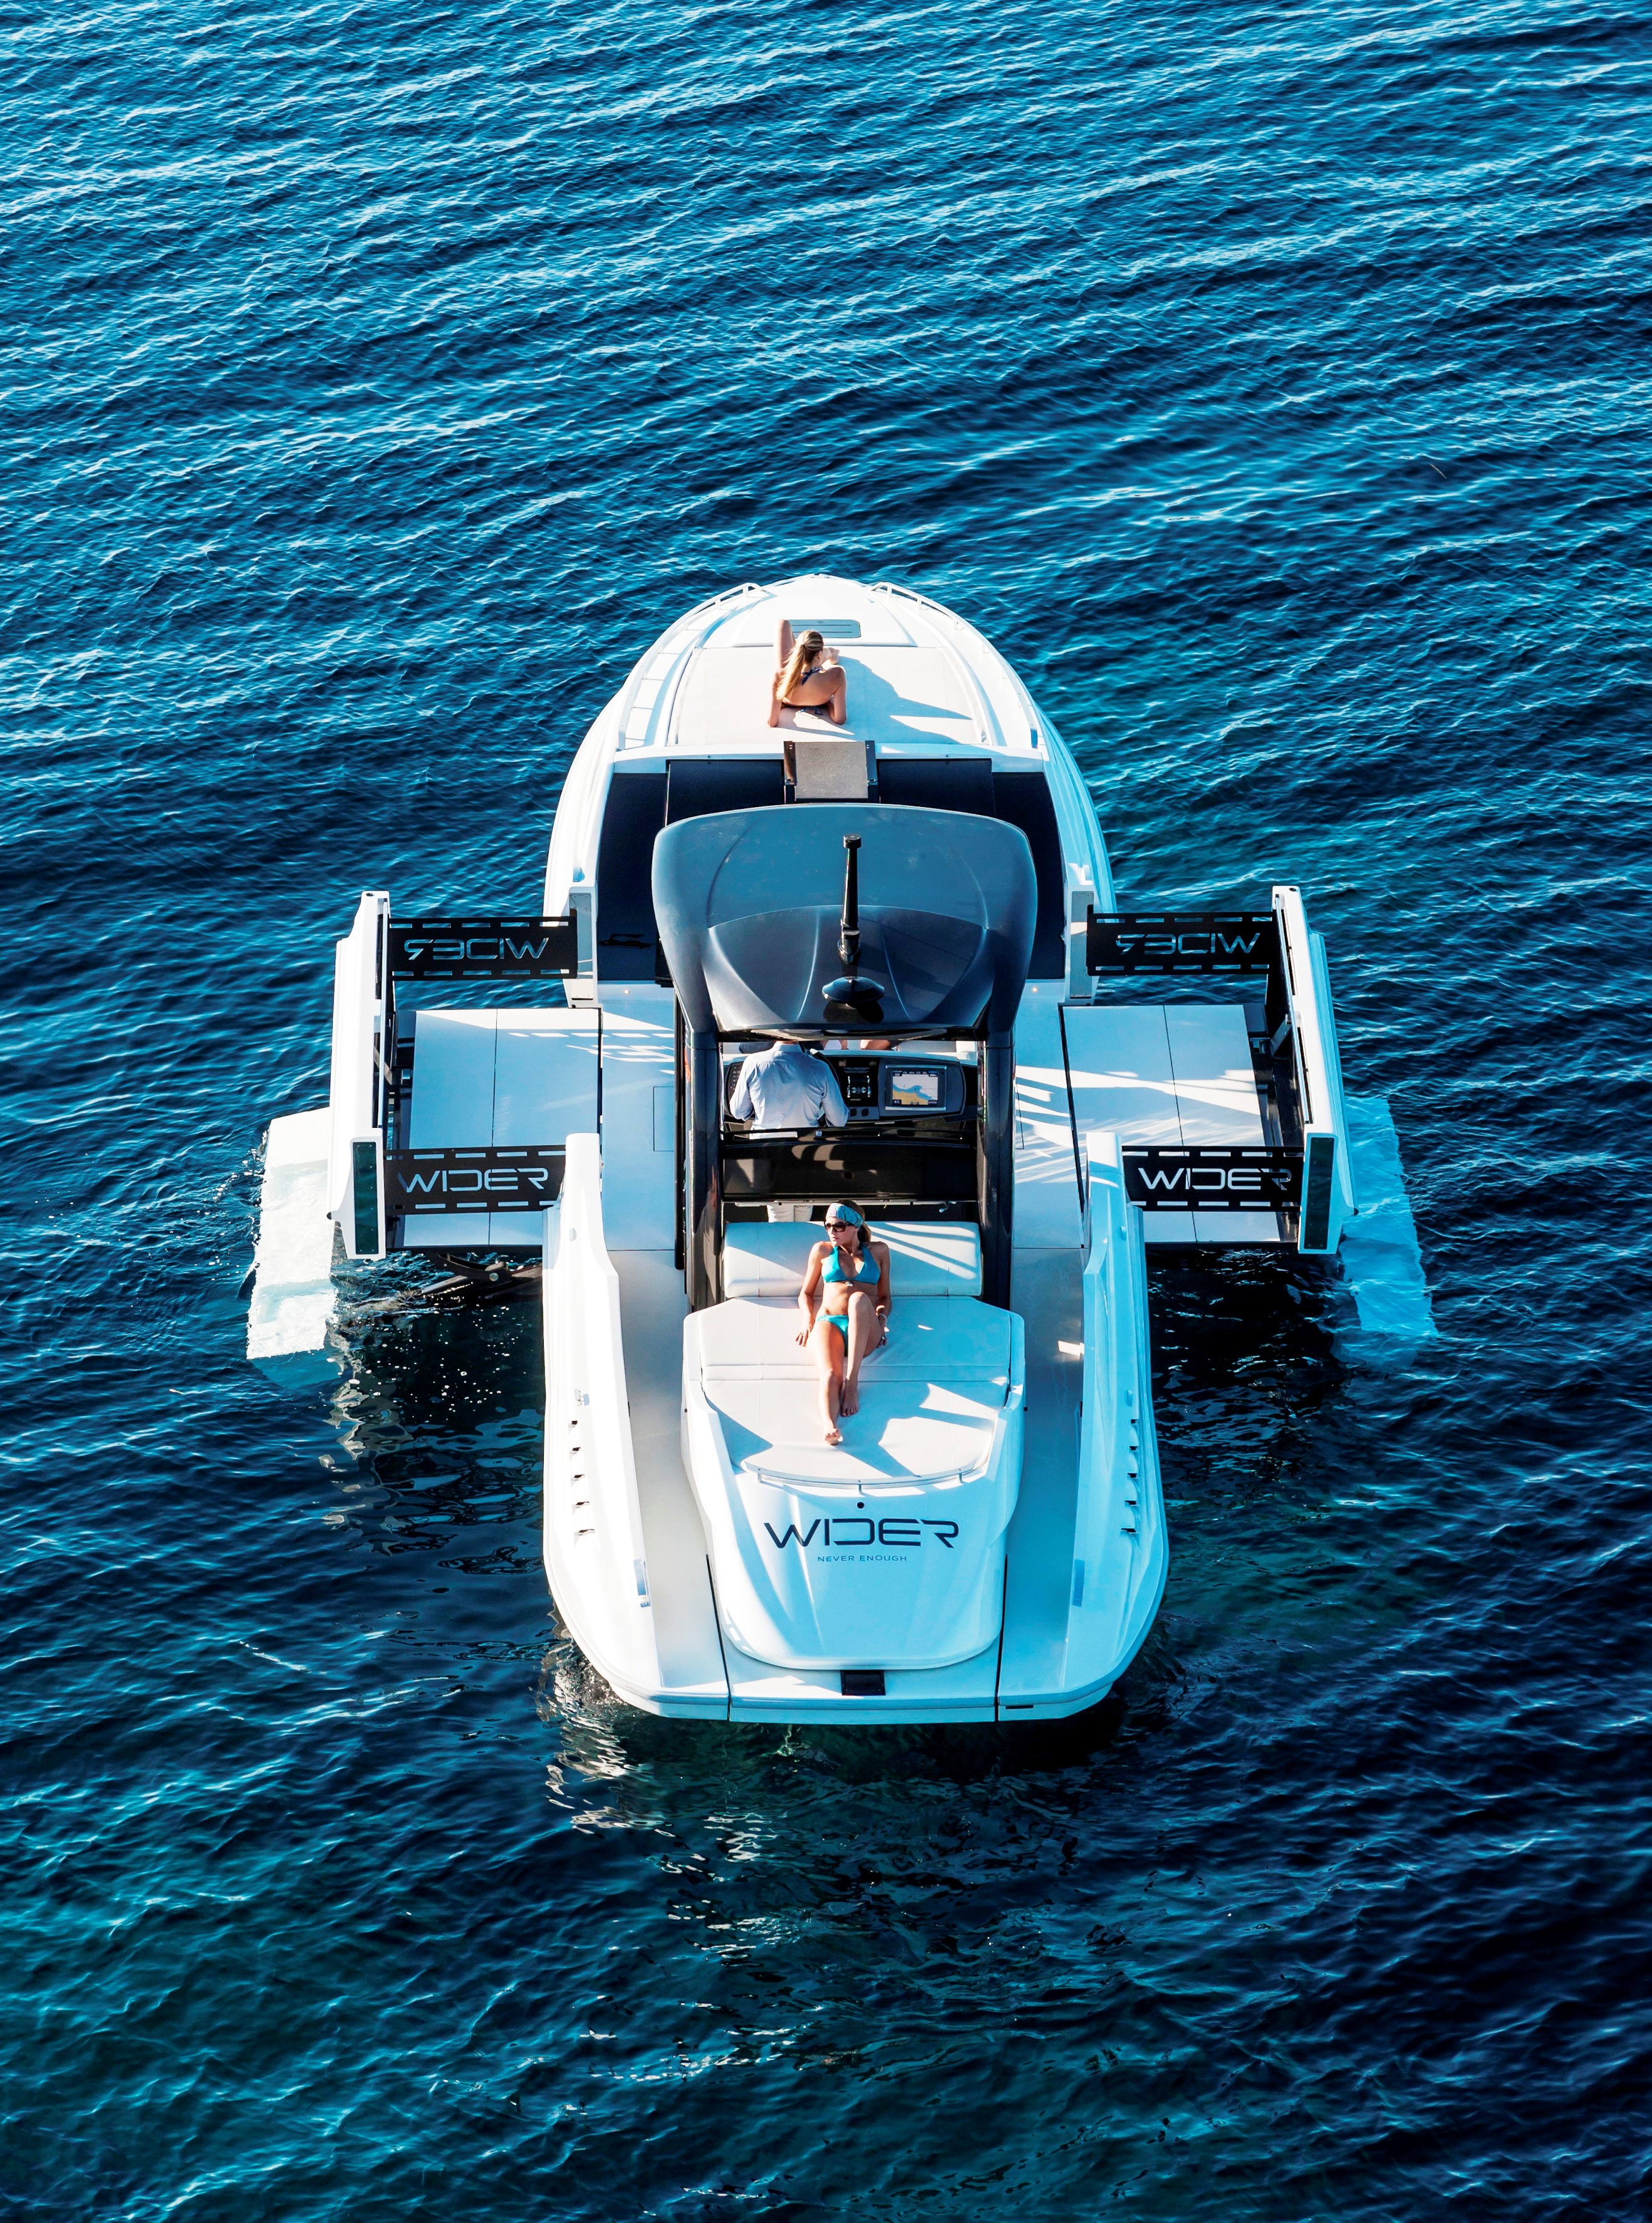 WIDER 42´ yacht - view from above